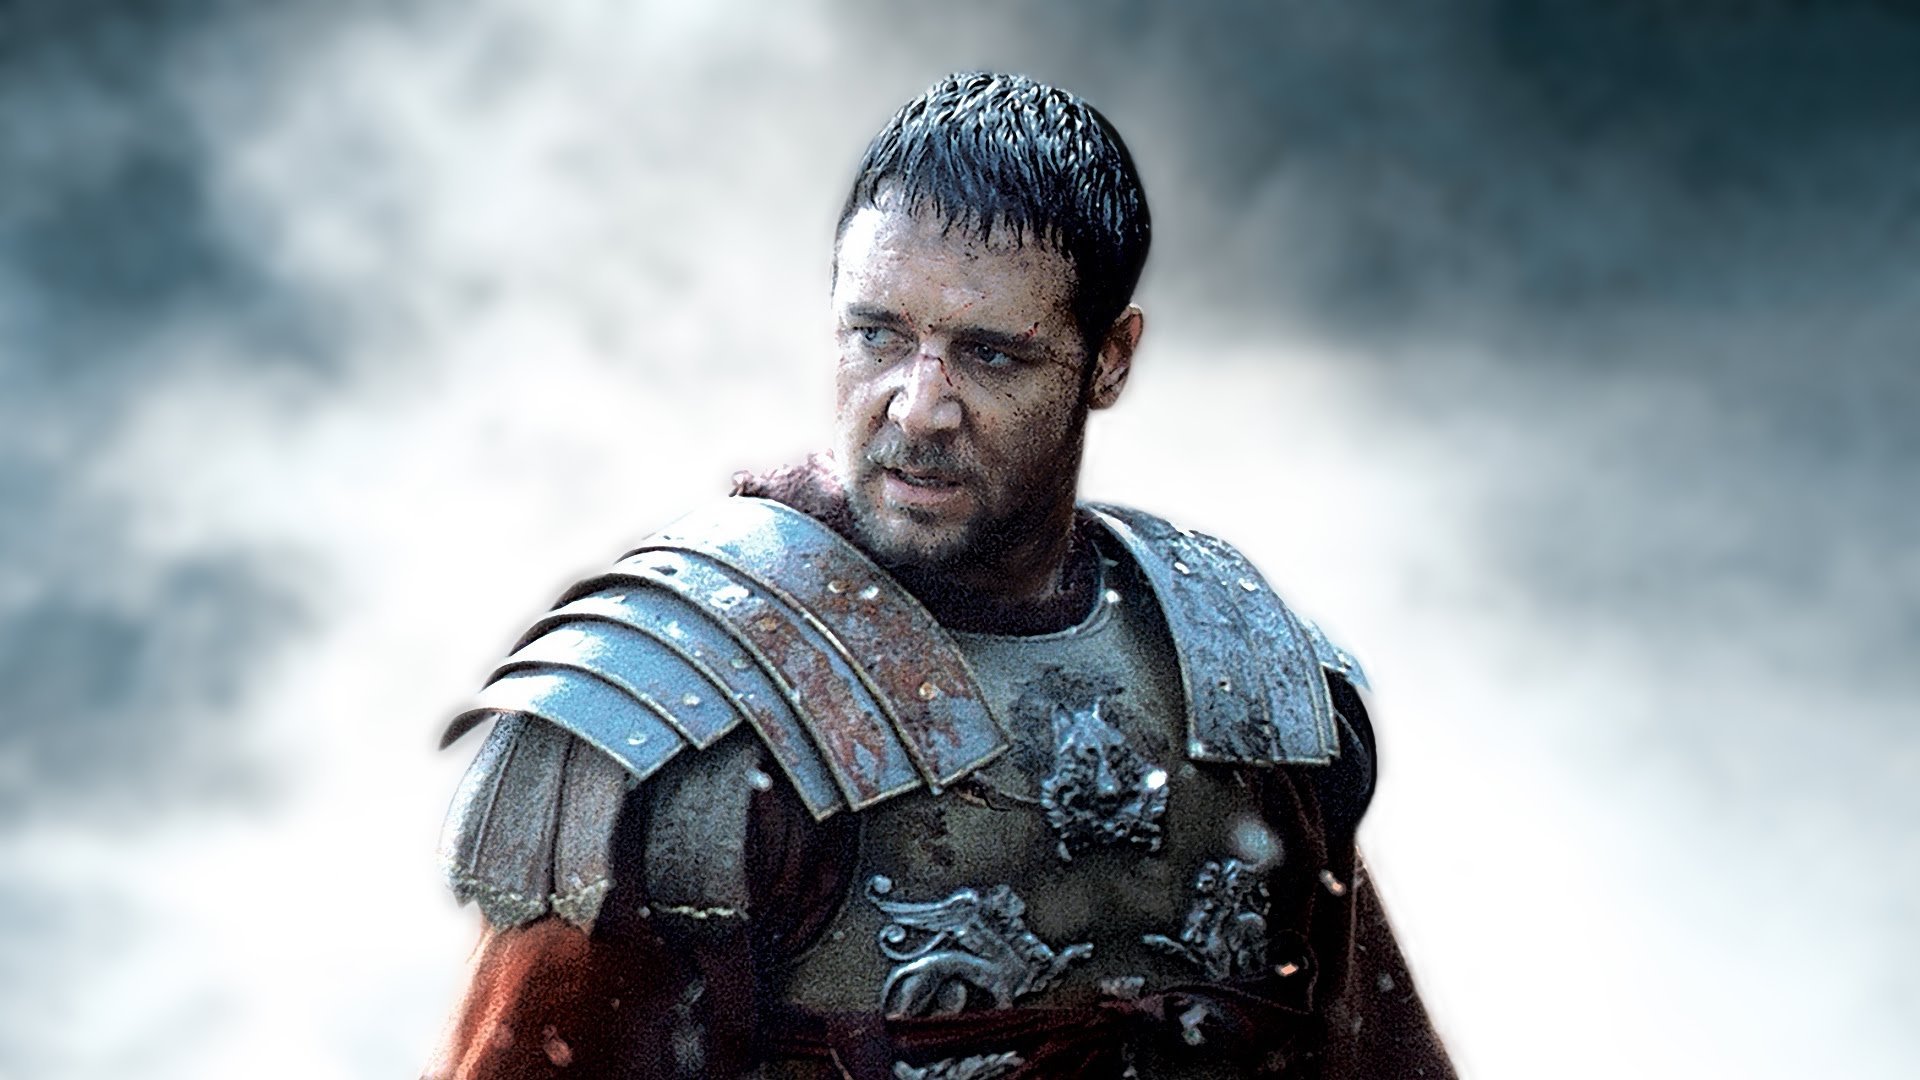 Russell Crowe, in GLADIATOR (2000)